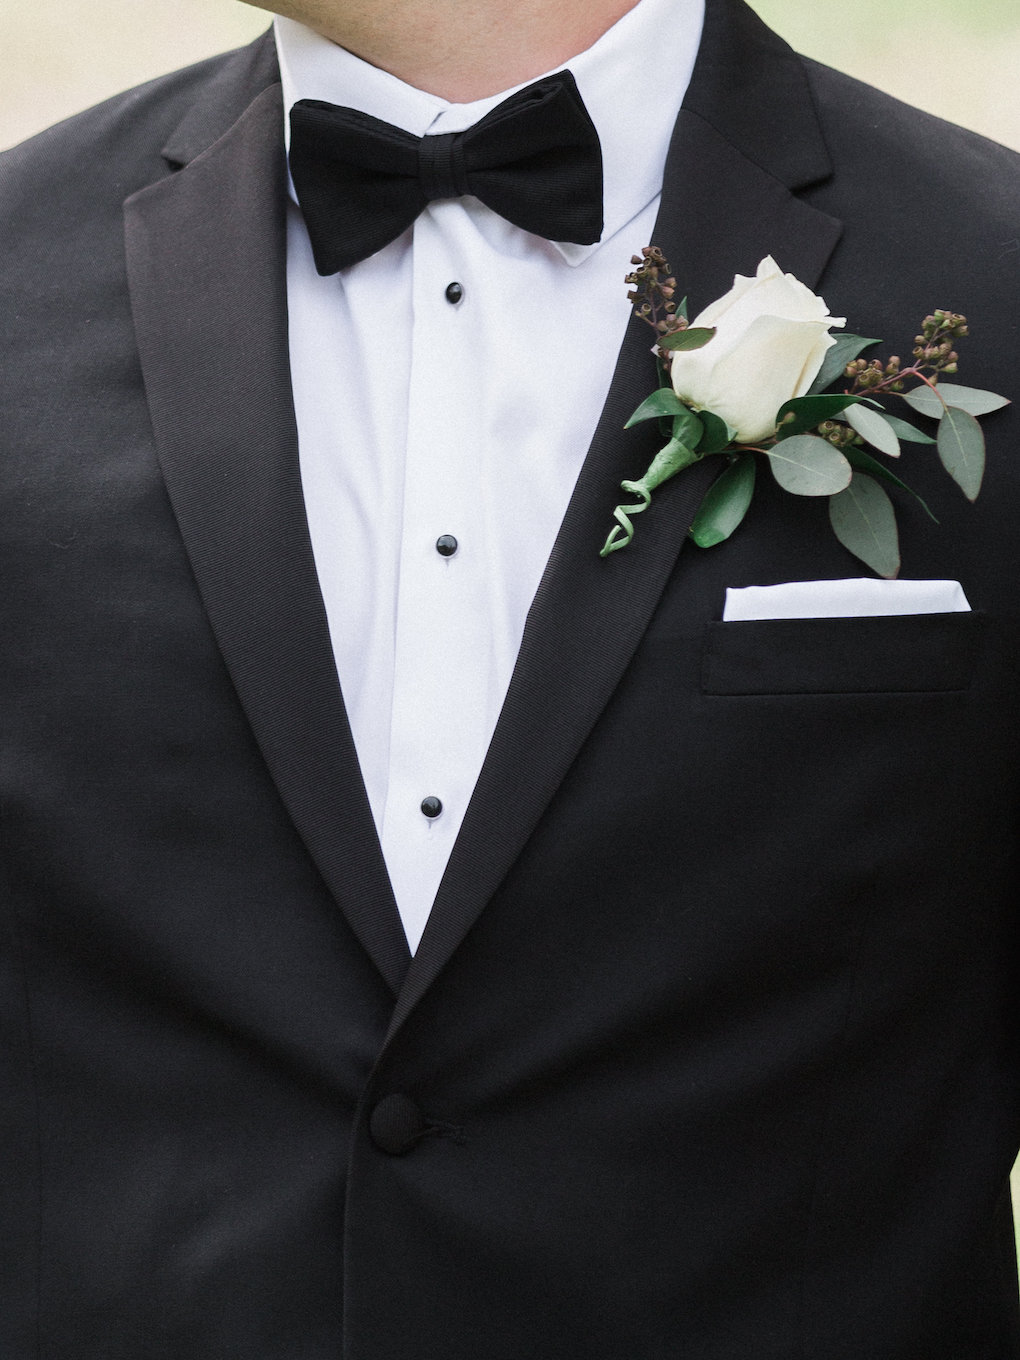 White wedding boutonniere for chic wedding in Buffalo, NY planned by Exhale Events. Find more timeless wedding inspiration at exhale-events.com!